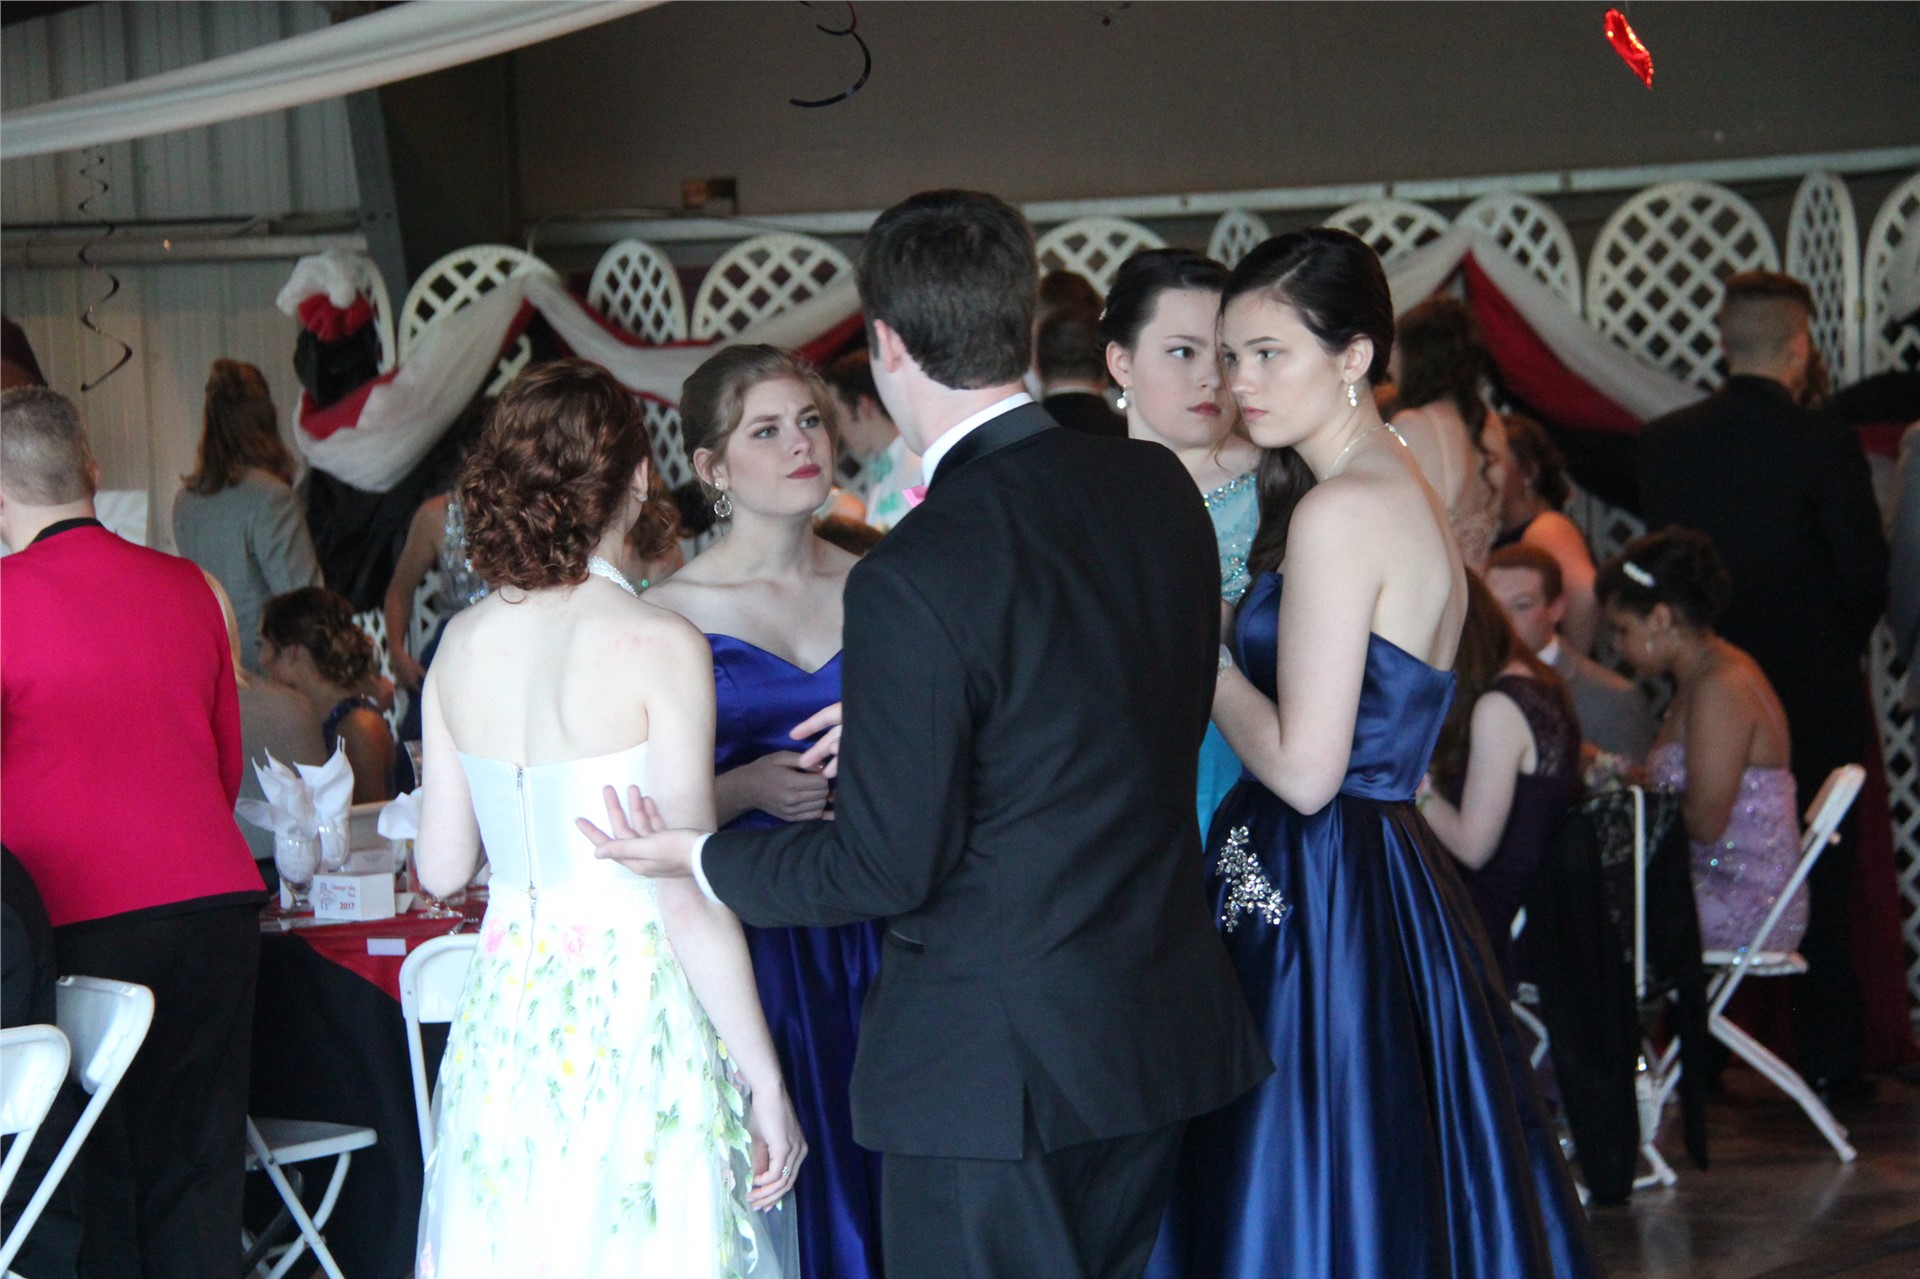 group of students socialize inside prom event